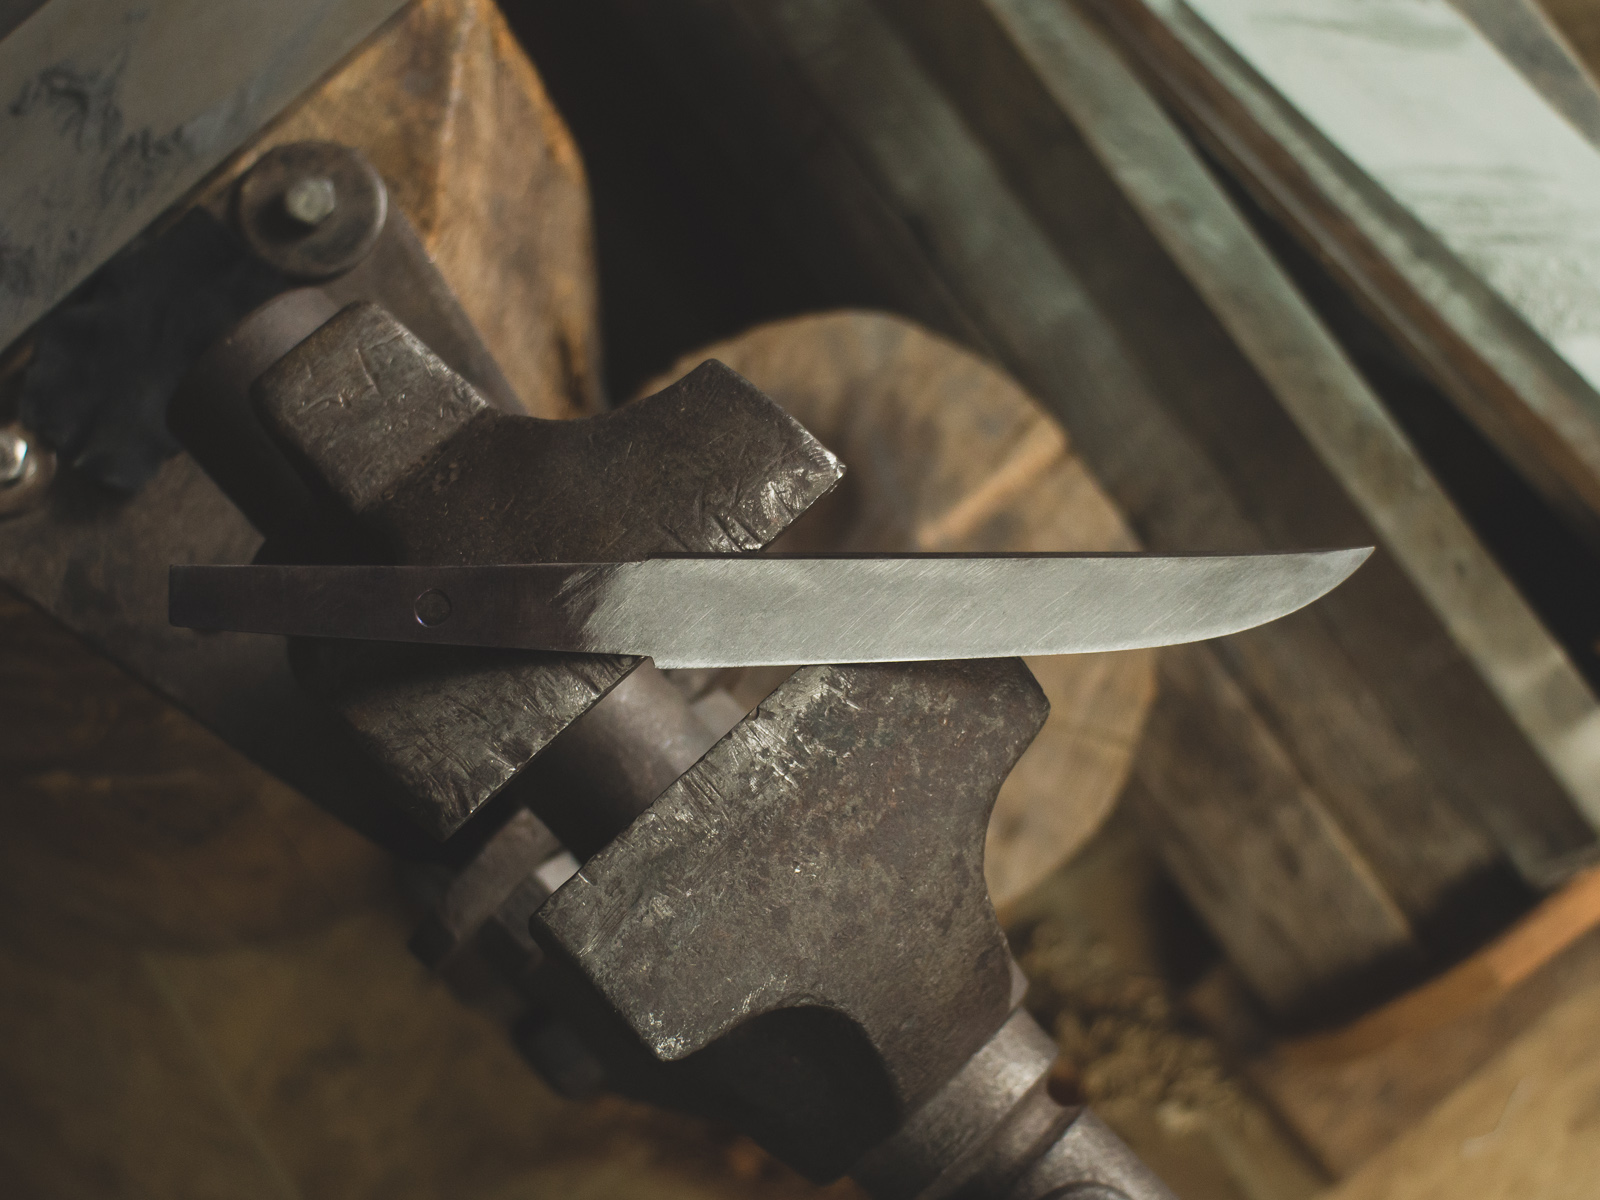 Island Blacksmith: Charcoal forged knives for DIY makers.